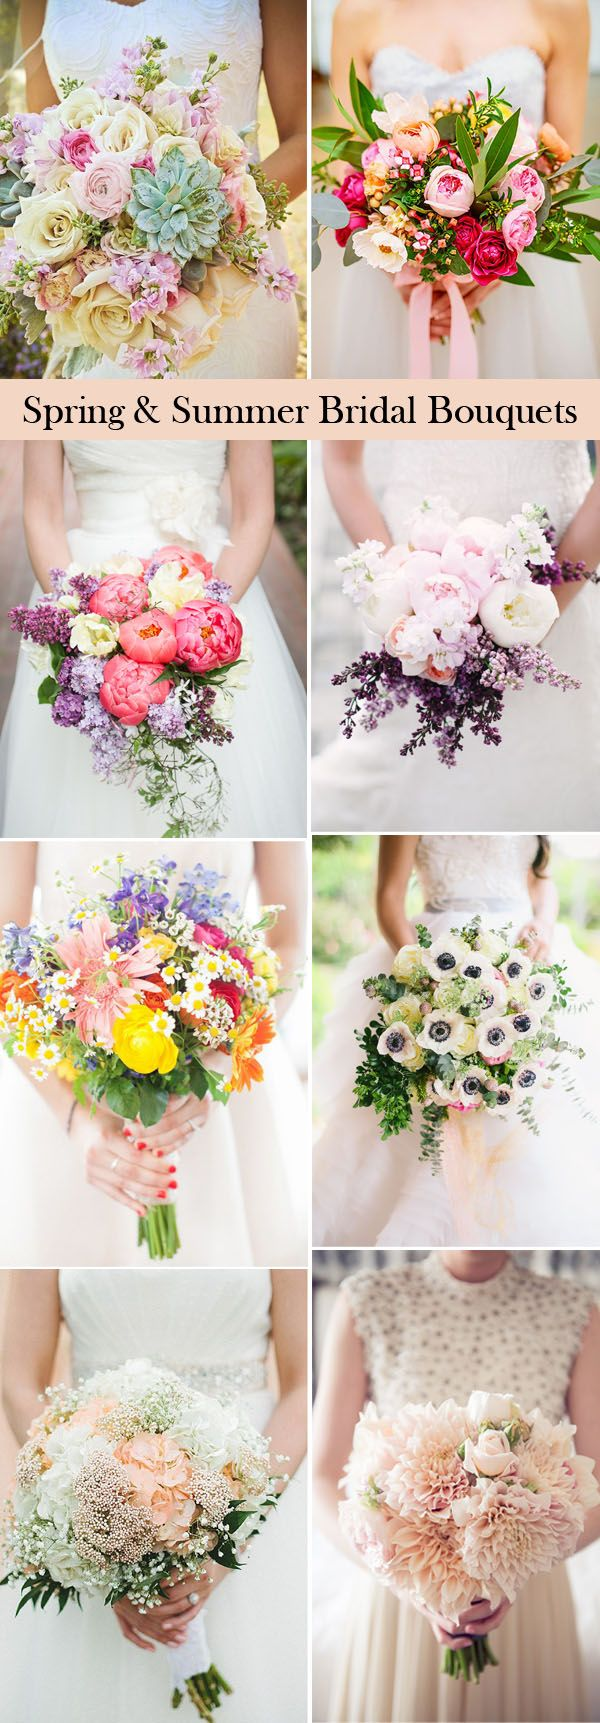 58 best Wedding Ideas For Spring images on Pinterest | Augusta jones ...